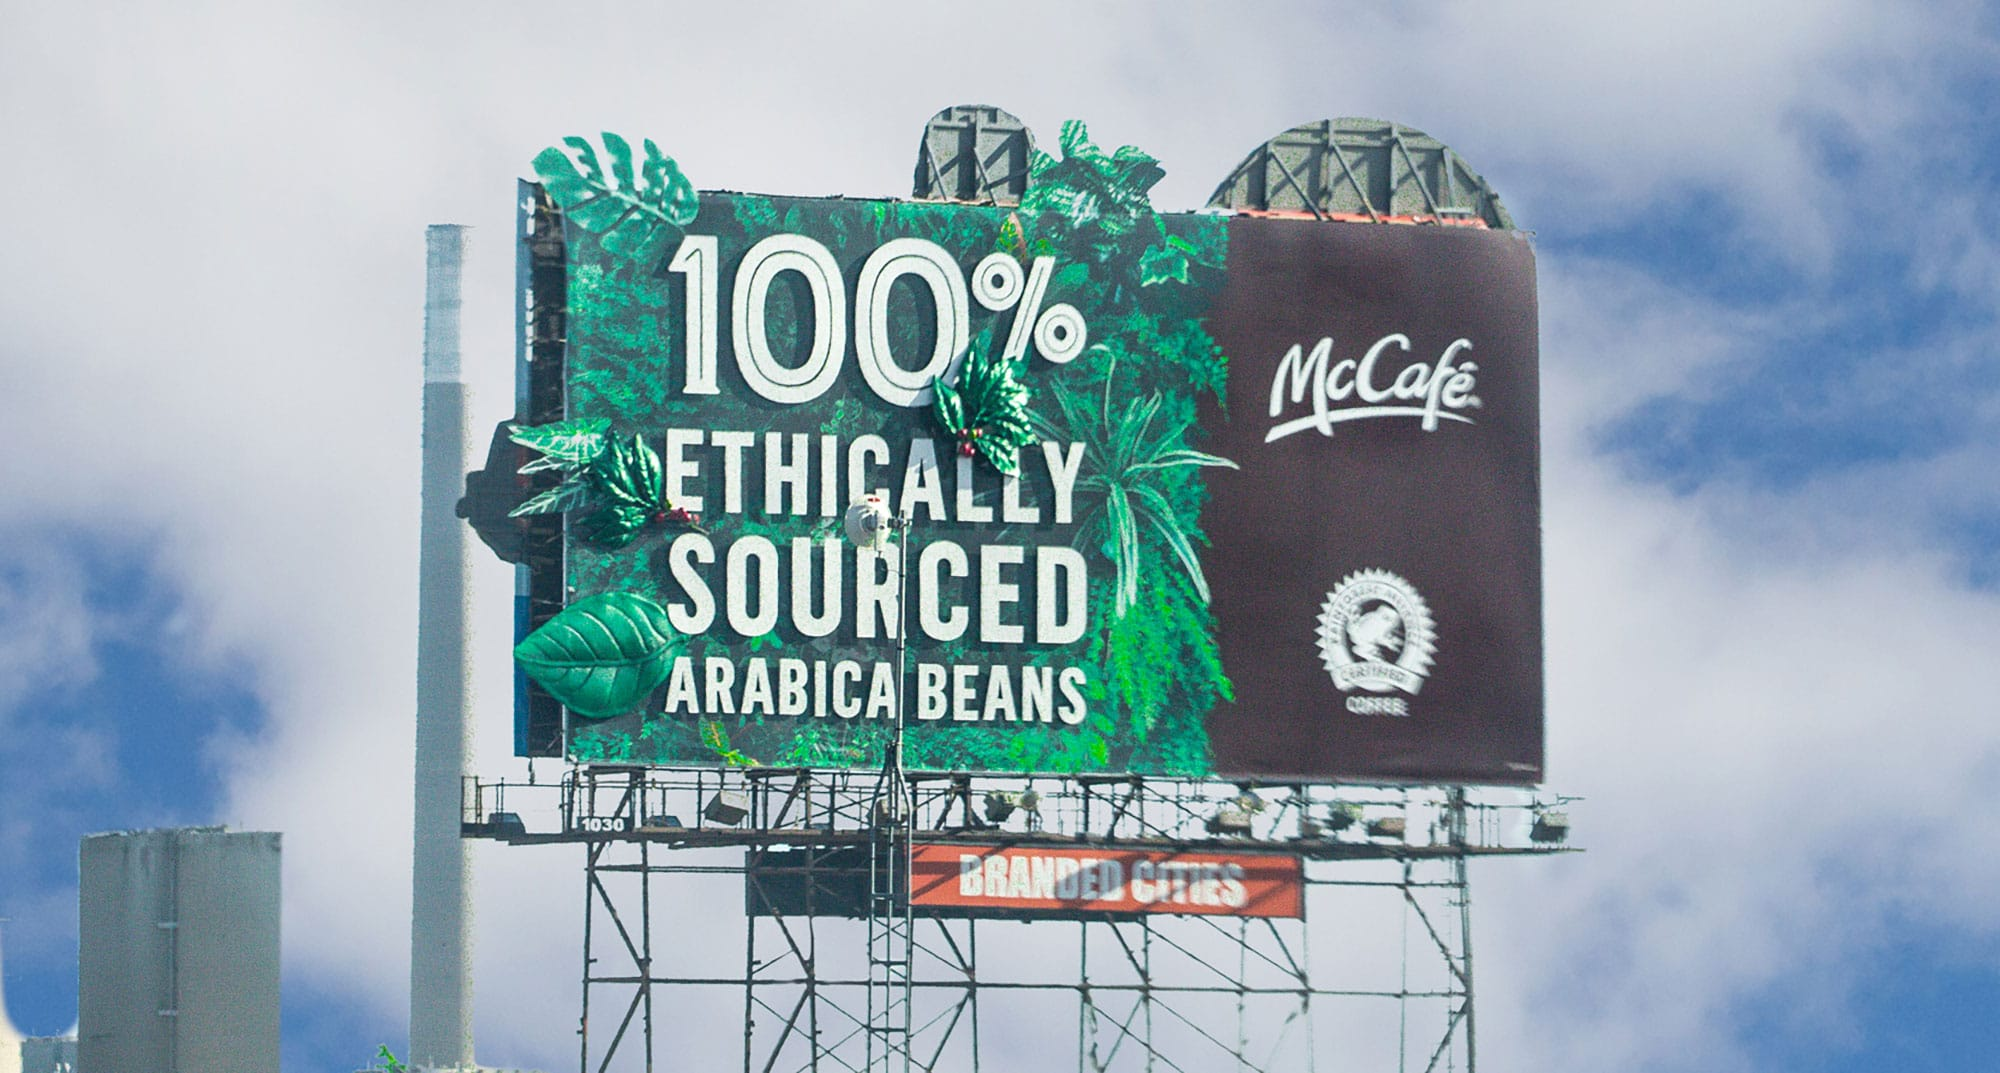 Canadian company Media Resources was able to add 3D 'foliage' to this billboard for Branded Cities.